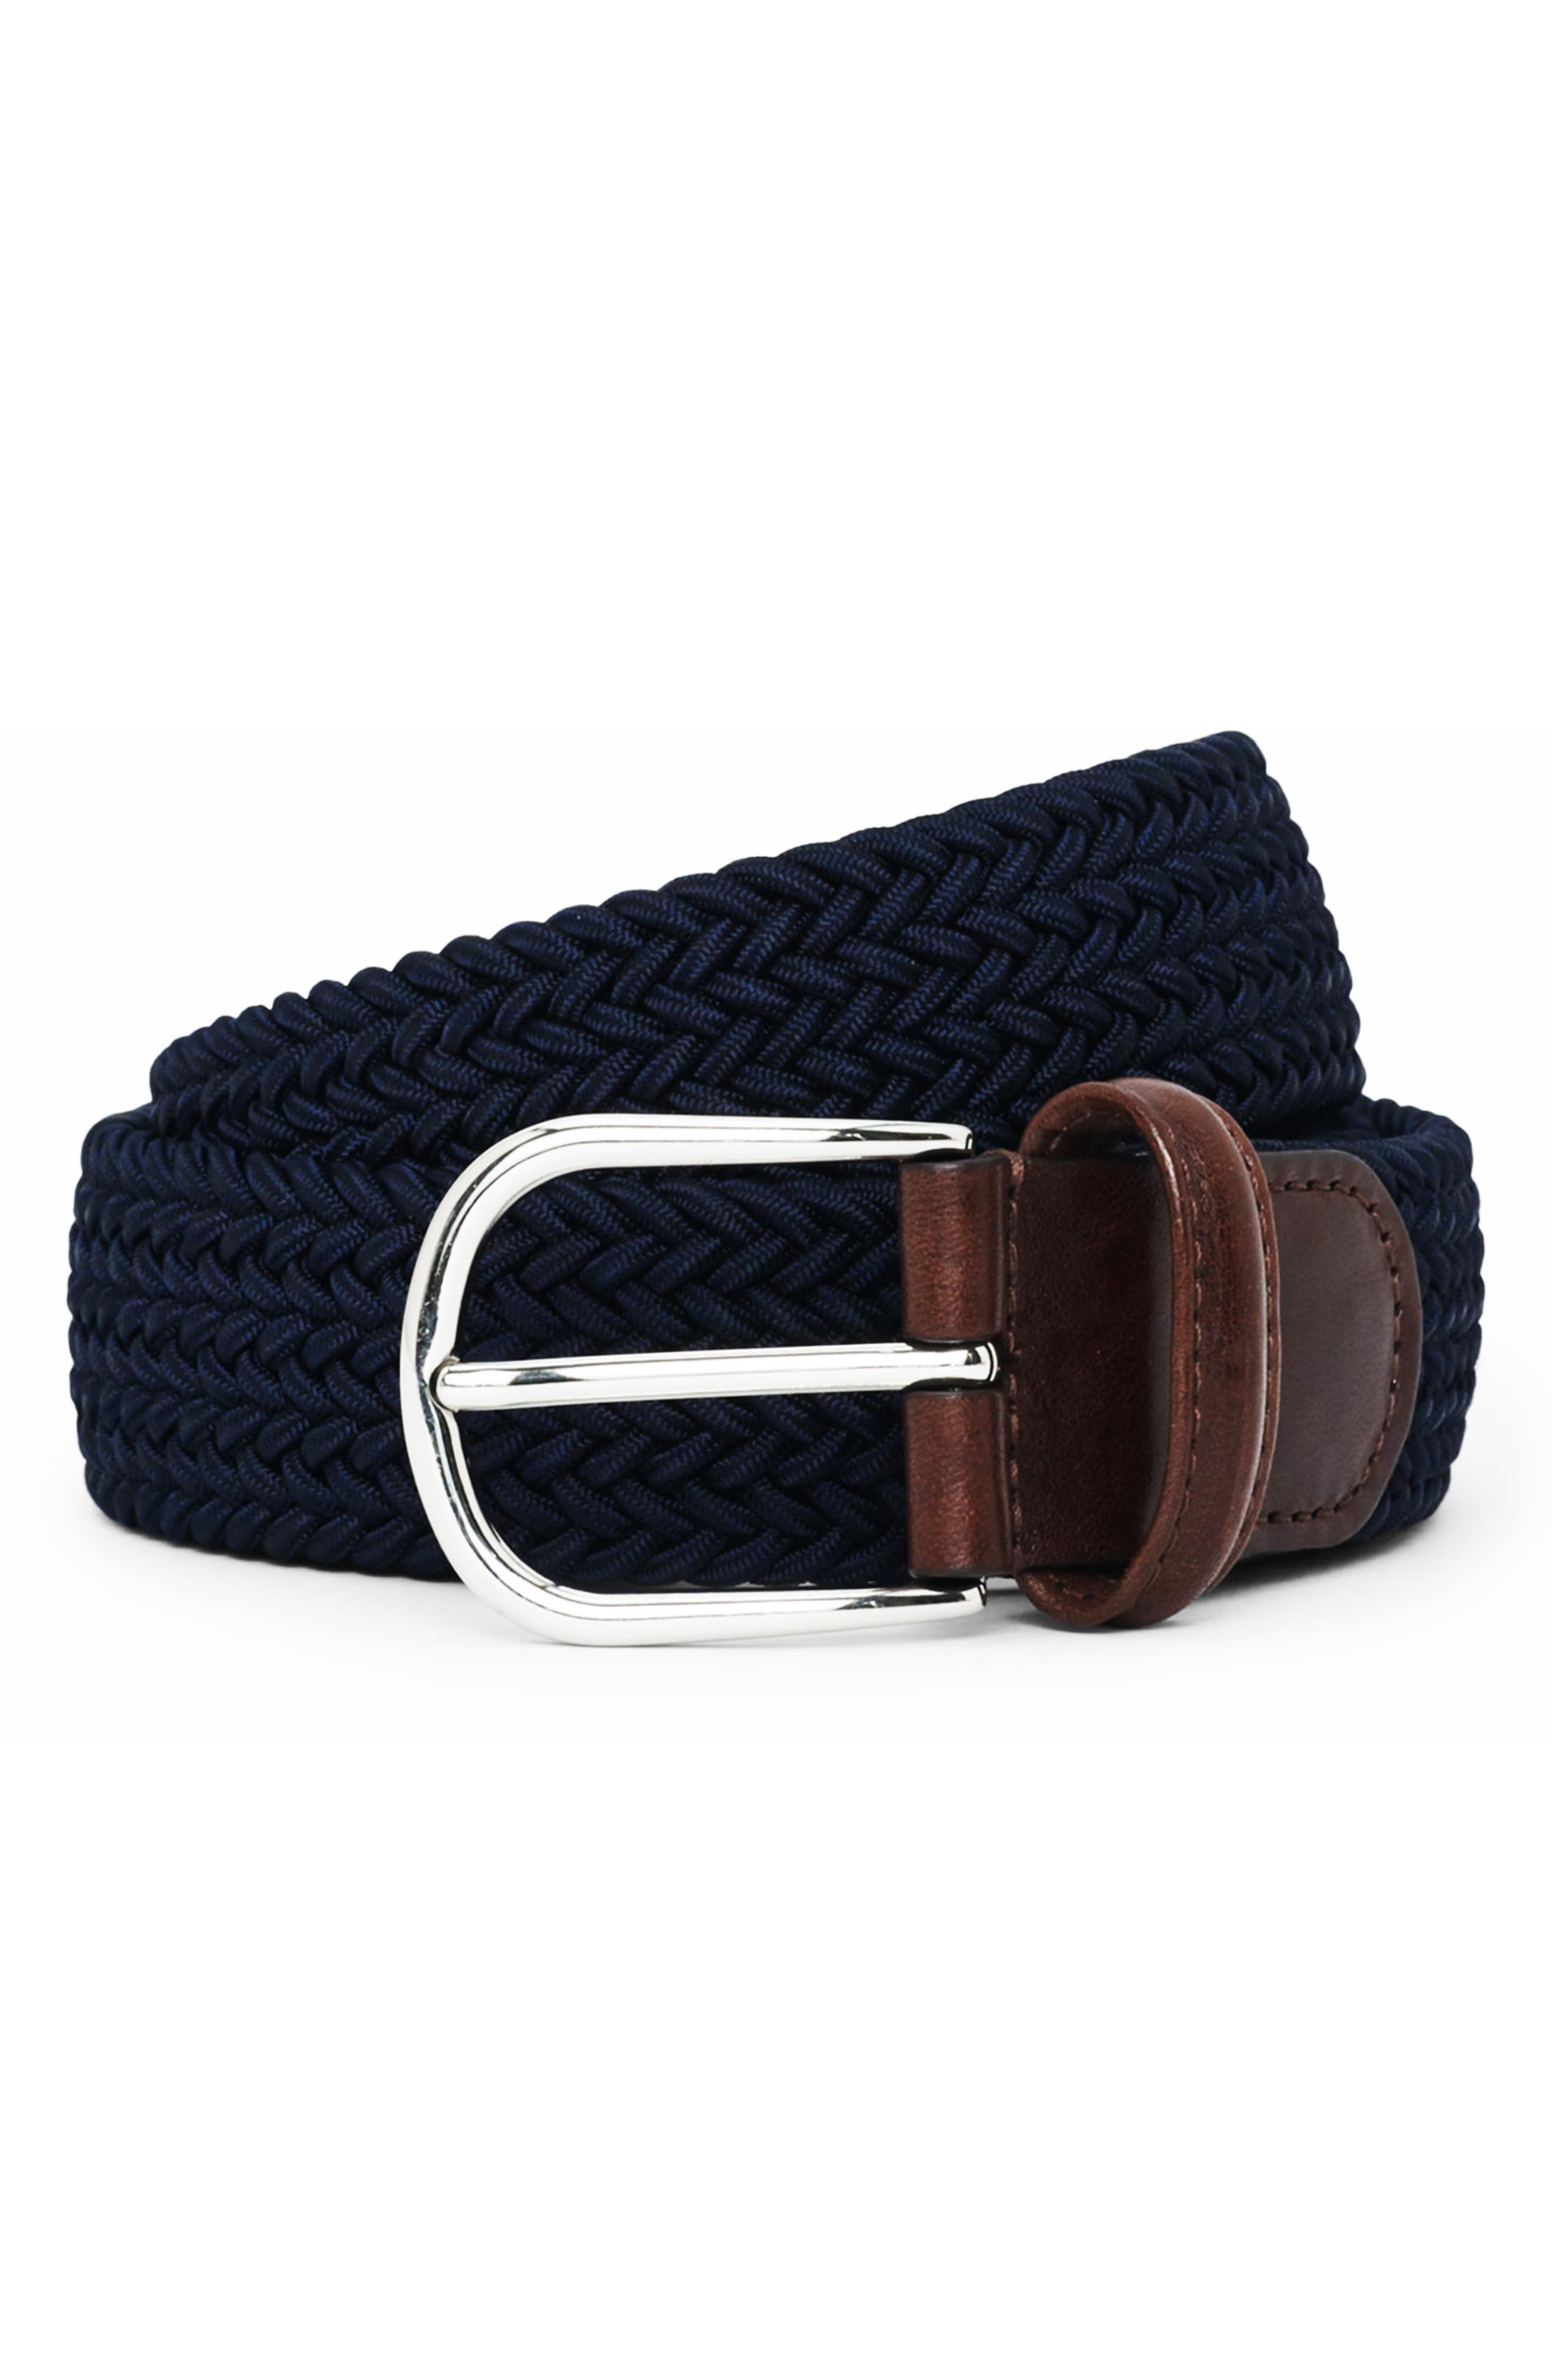 ANDERSONS Basic Stretch Woven Belt in Navy